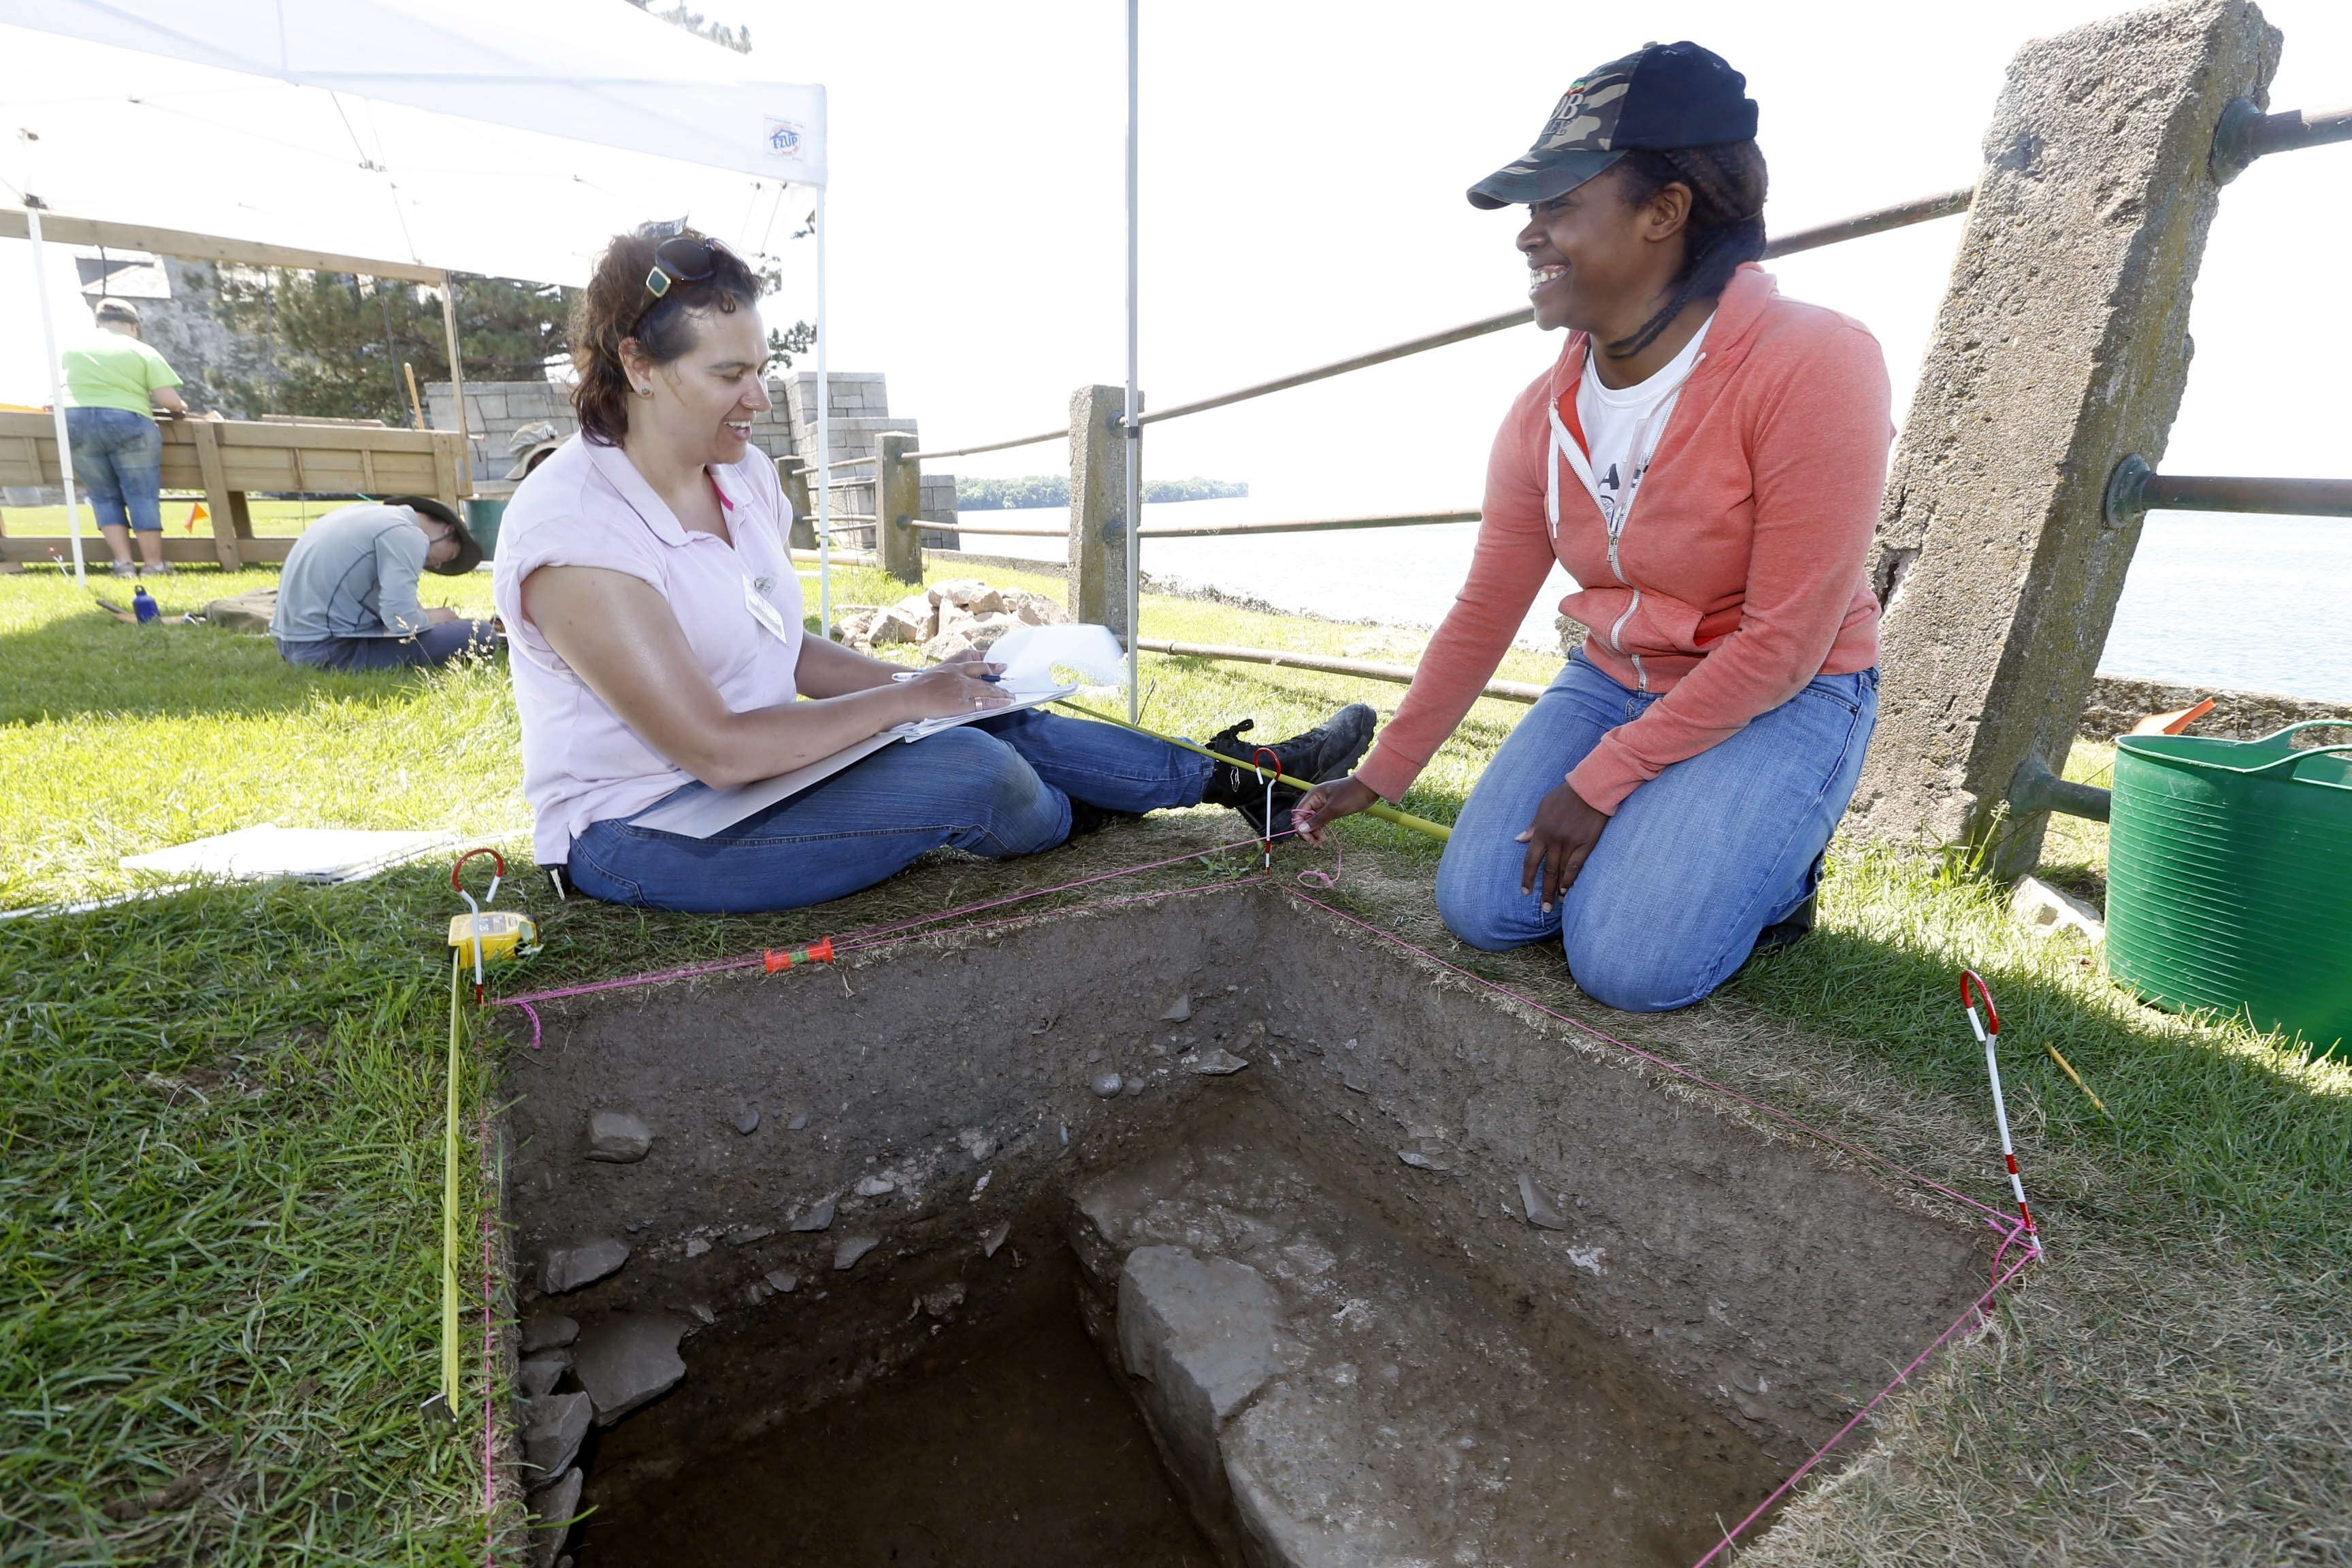 SUNY Buffalo State anthropology and archaeology students Wendy Borrelli, left, and Krystal Norman team at a dig next to 1726 French Castle at Old Fort Niagara. They are members of six-week project run by assistant anthropology professor Susan Maguire.